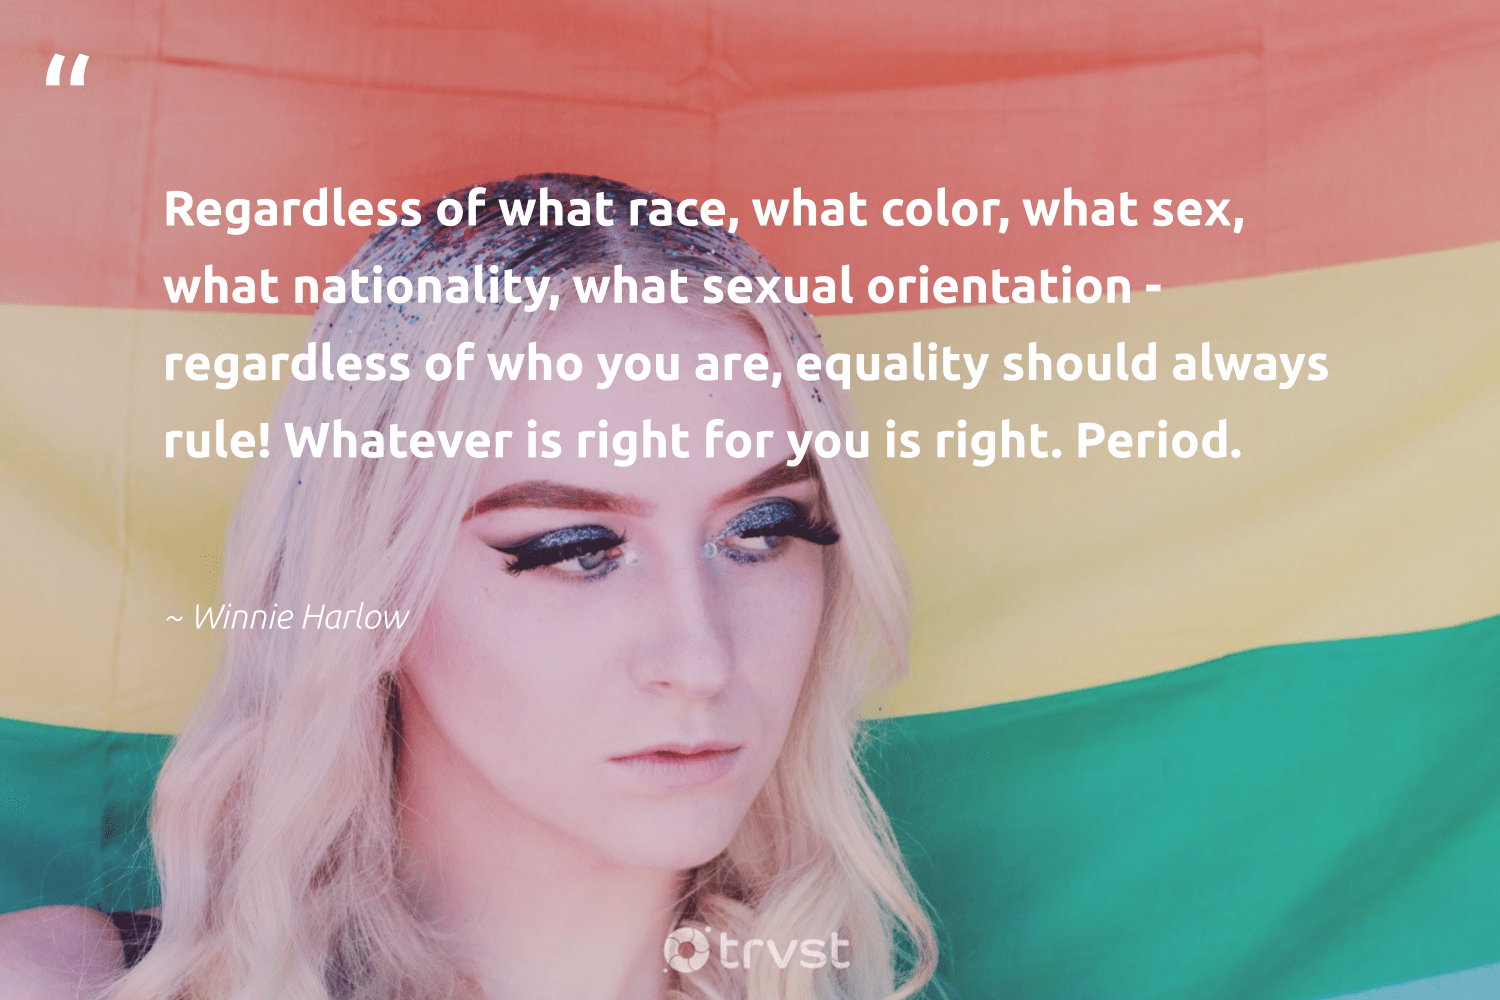 """Regardless of what race, what color, what sex, what nationality, what sexual orientation - regardless of who you are, equality should always rule! Whatever is right for you is right. Period.""  - Winnie Harlow #trvst #quotes #equality #equalopportunity #socialgood #weareallone #gogreen #standup #socialchange #makeadifference #socialimpact #empowerment"